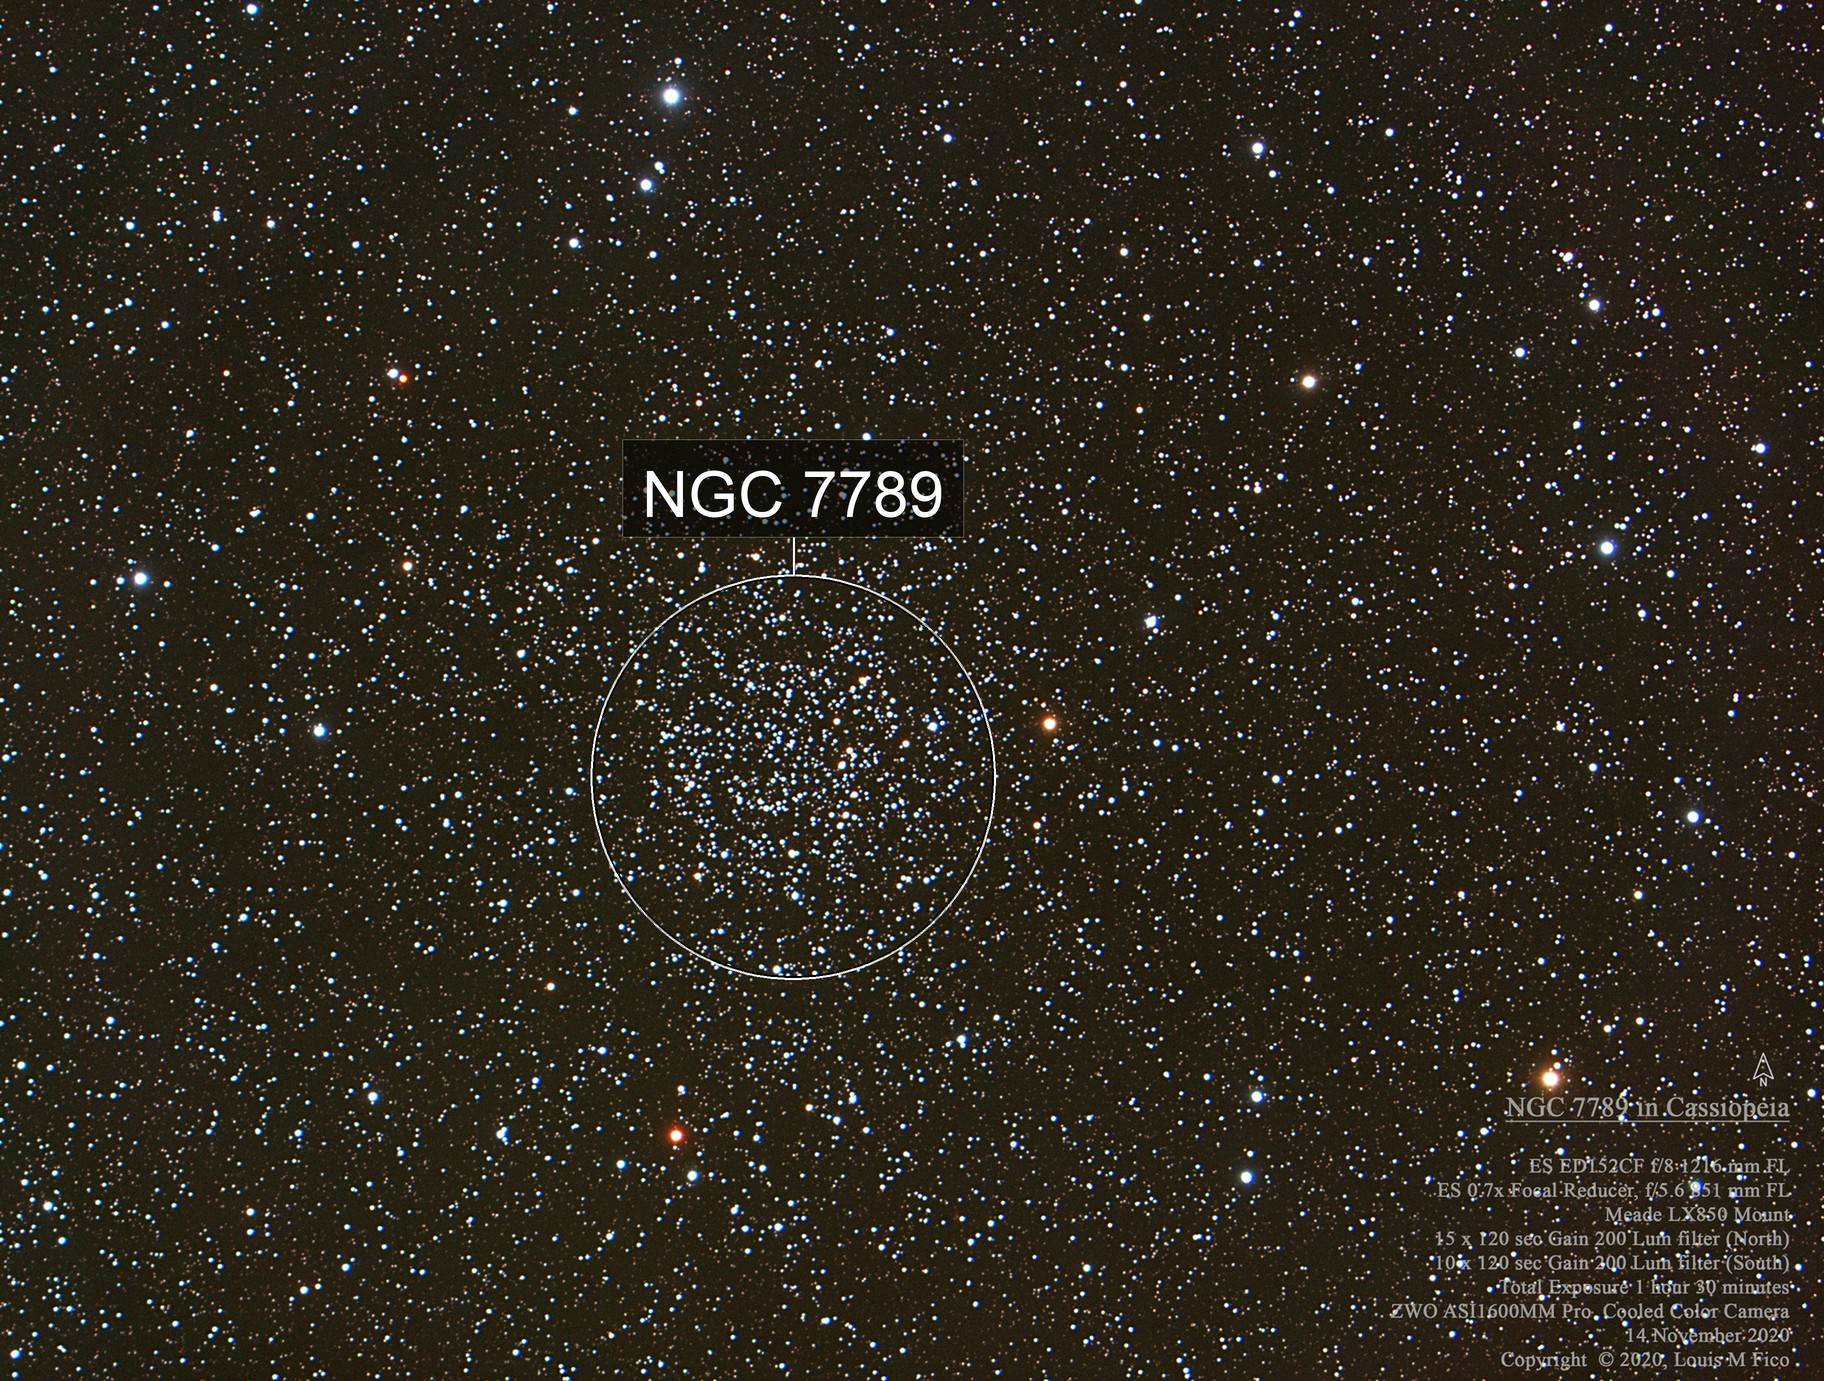 NGC 7789 in Cassiopeia